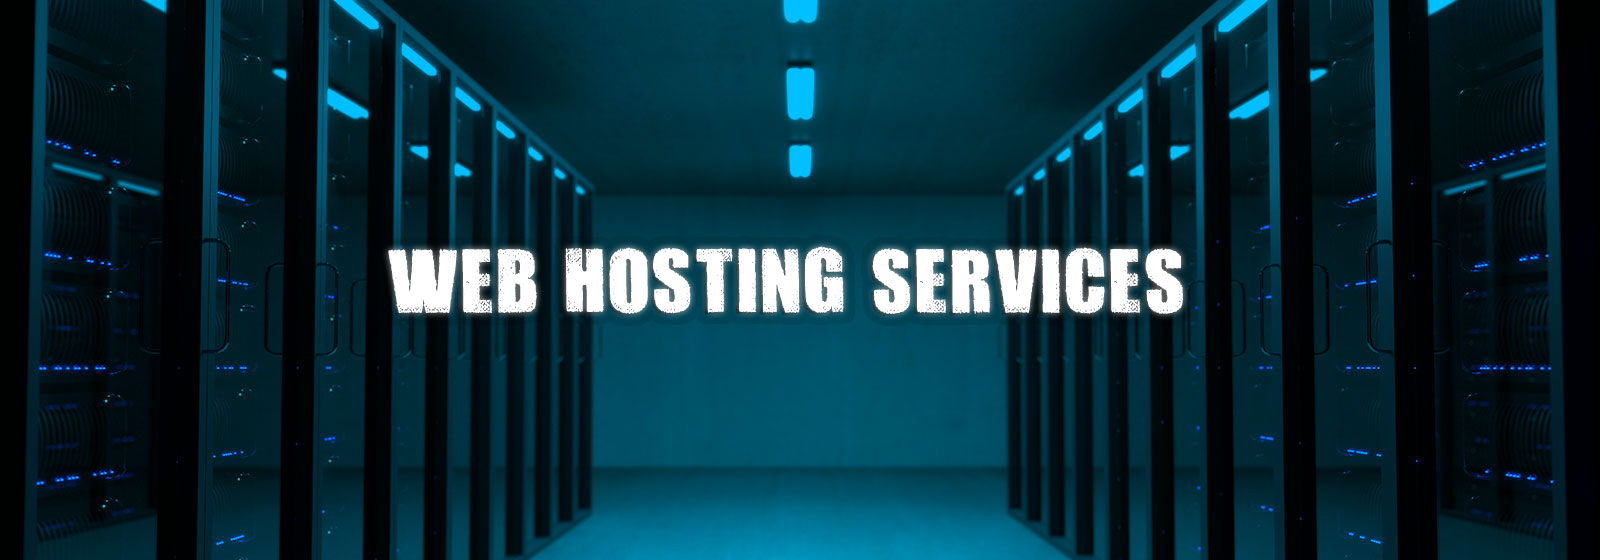 6 web-hosting services that you can consider using.